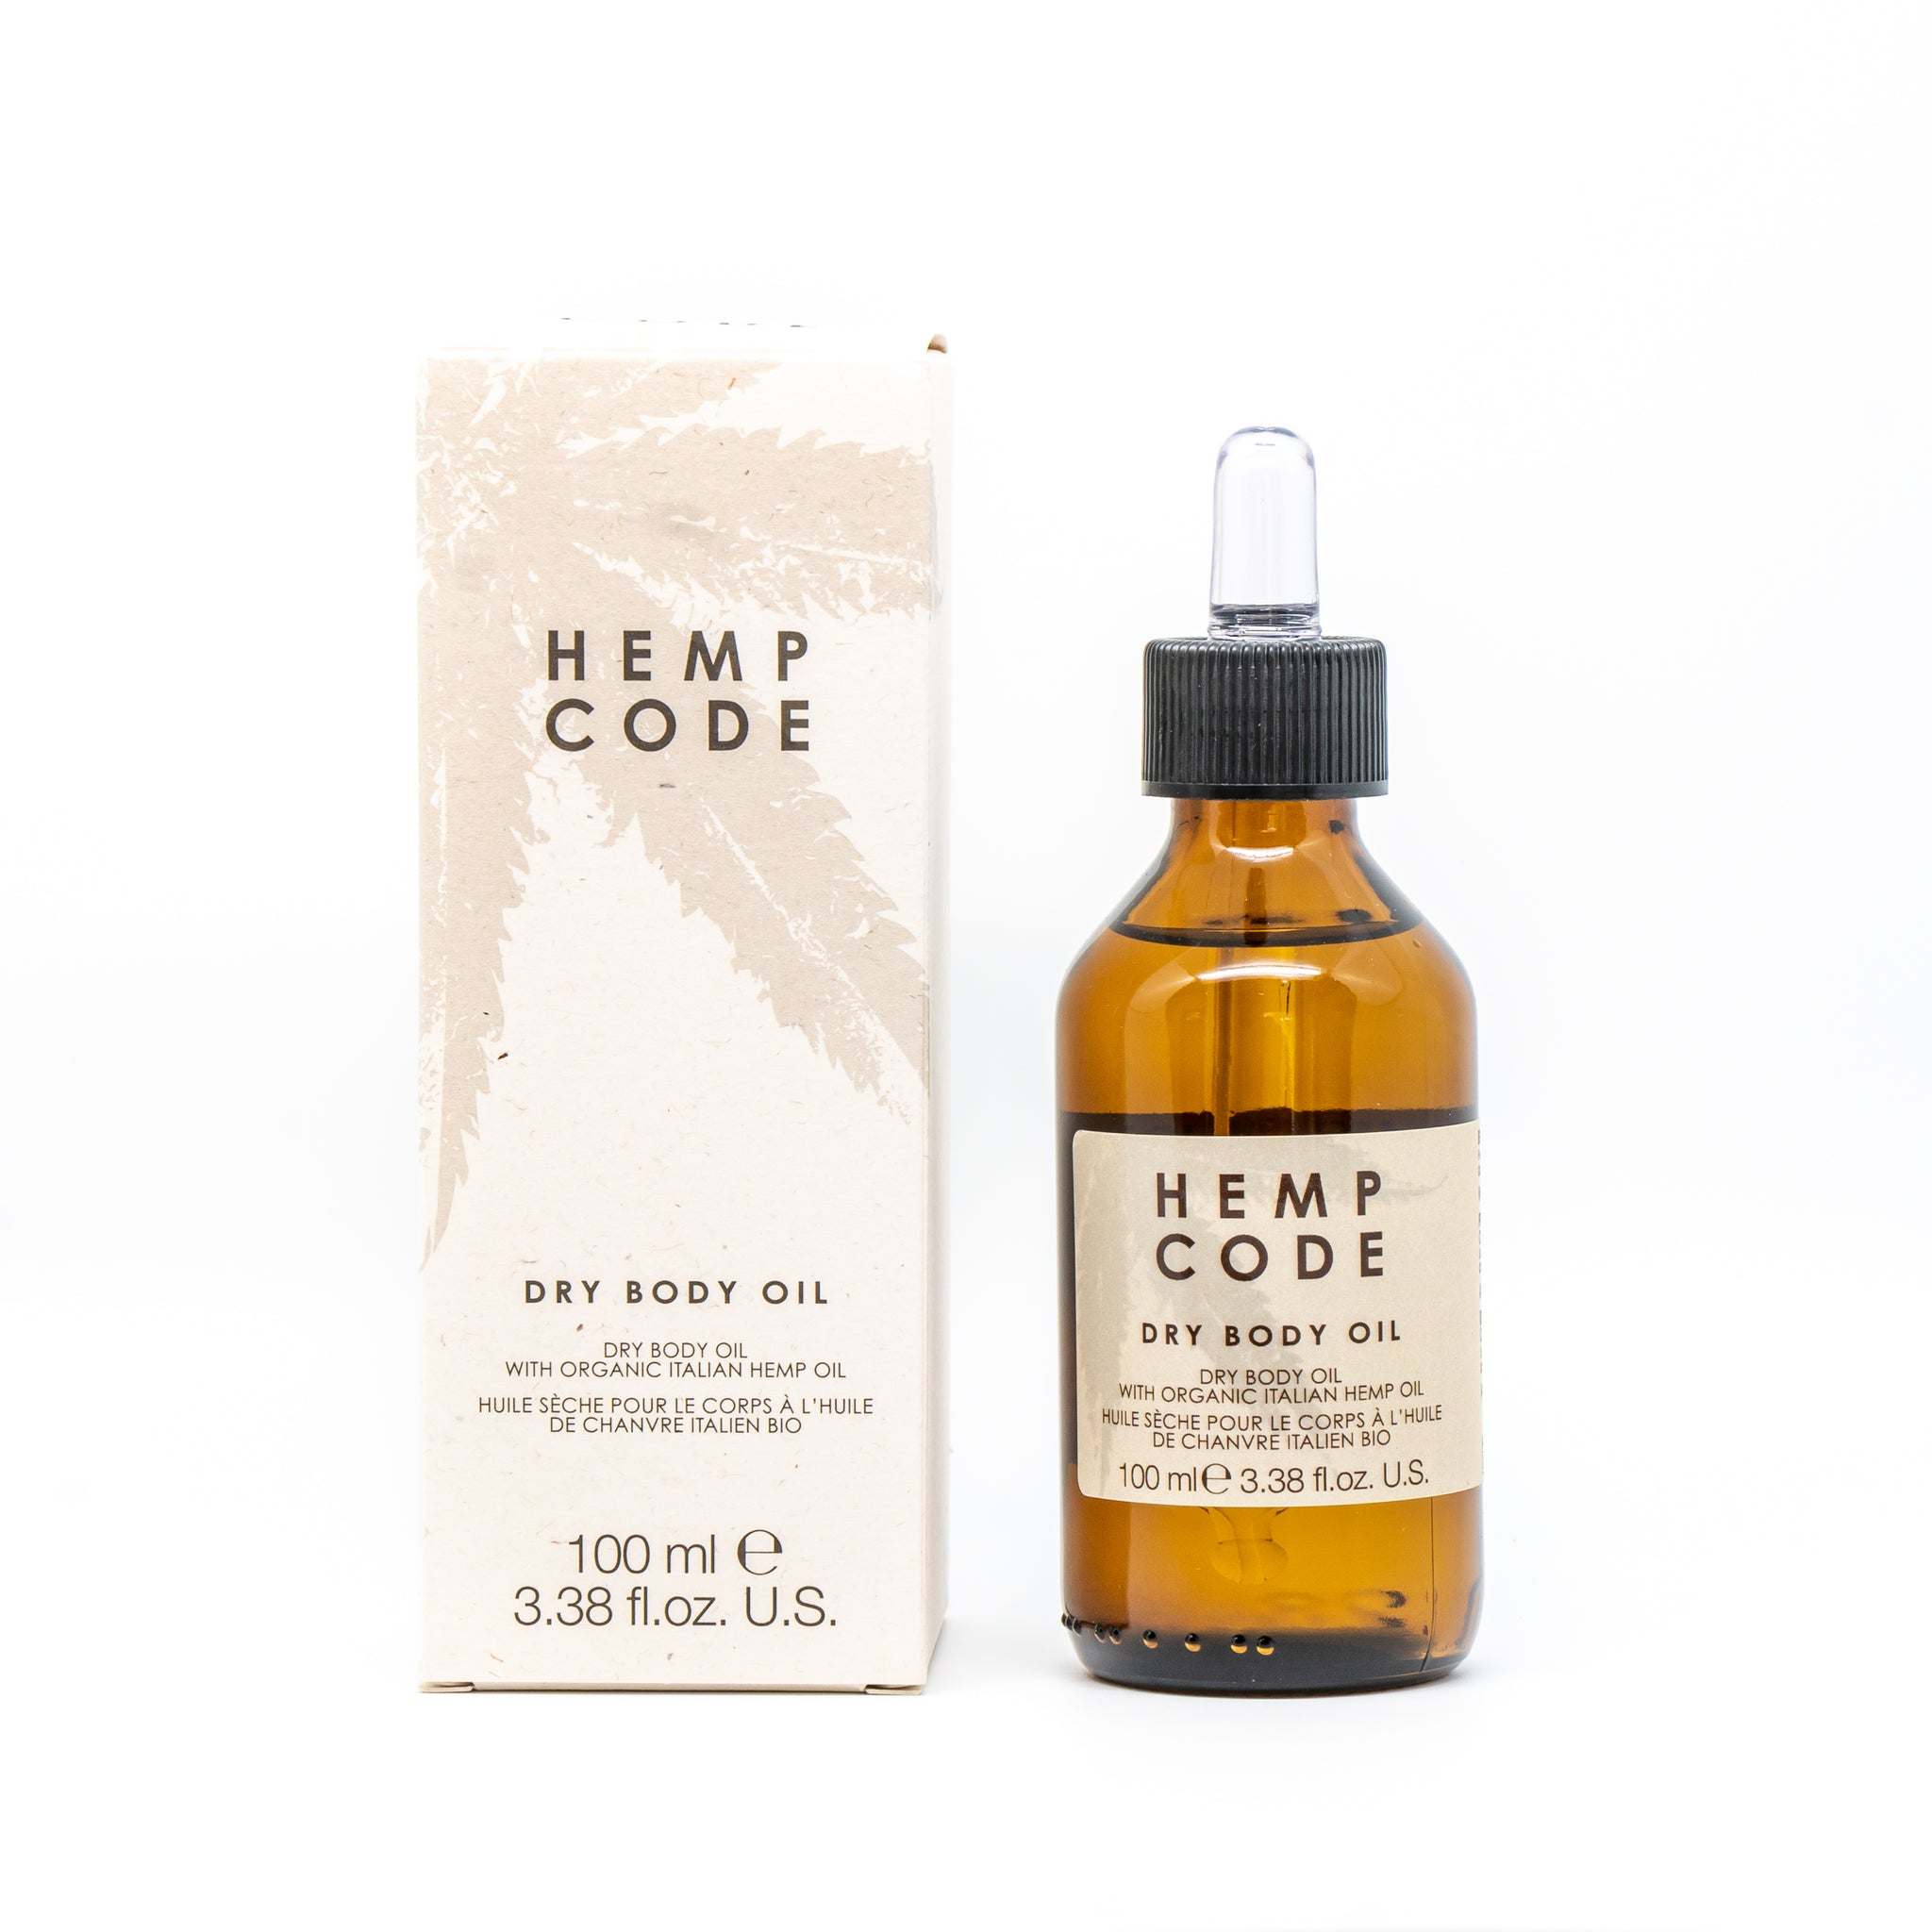 Hemp Code Dry Body Oil